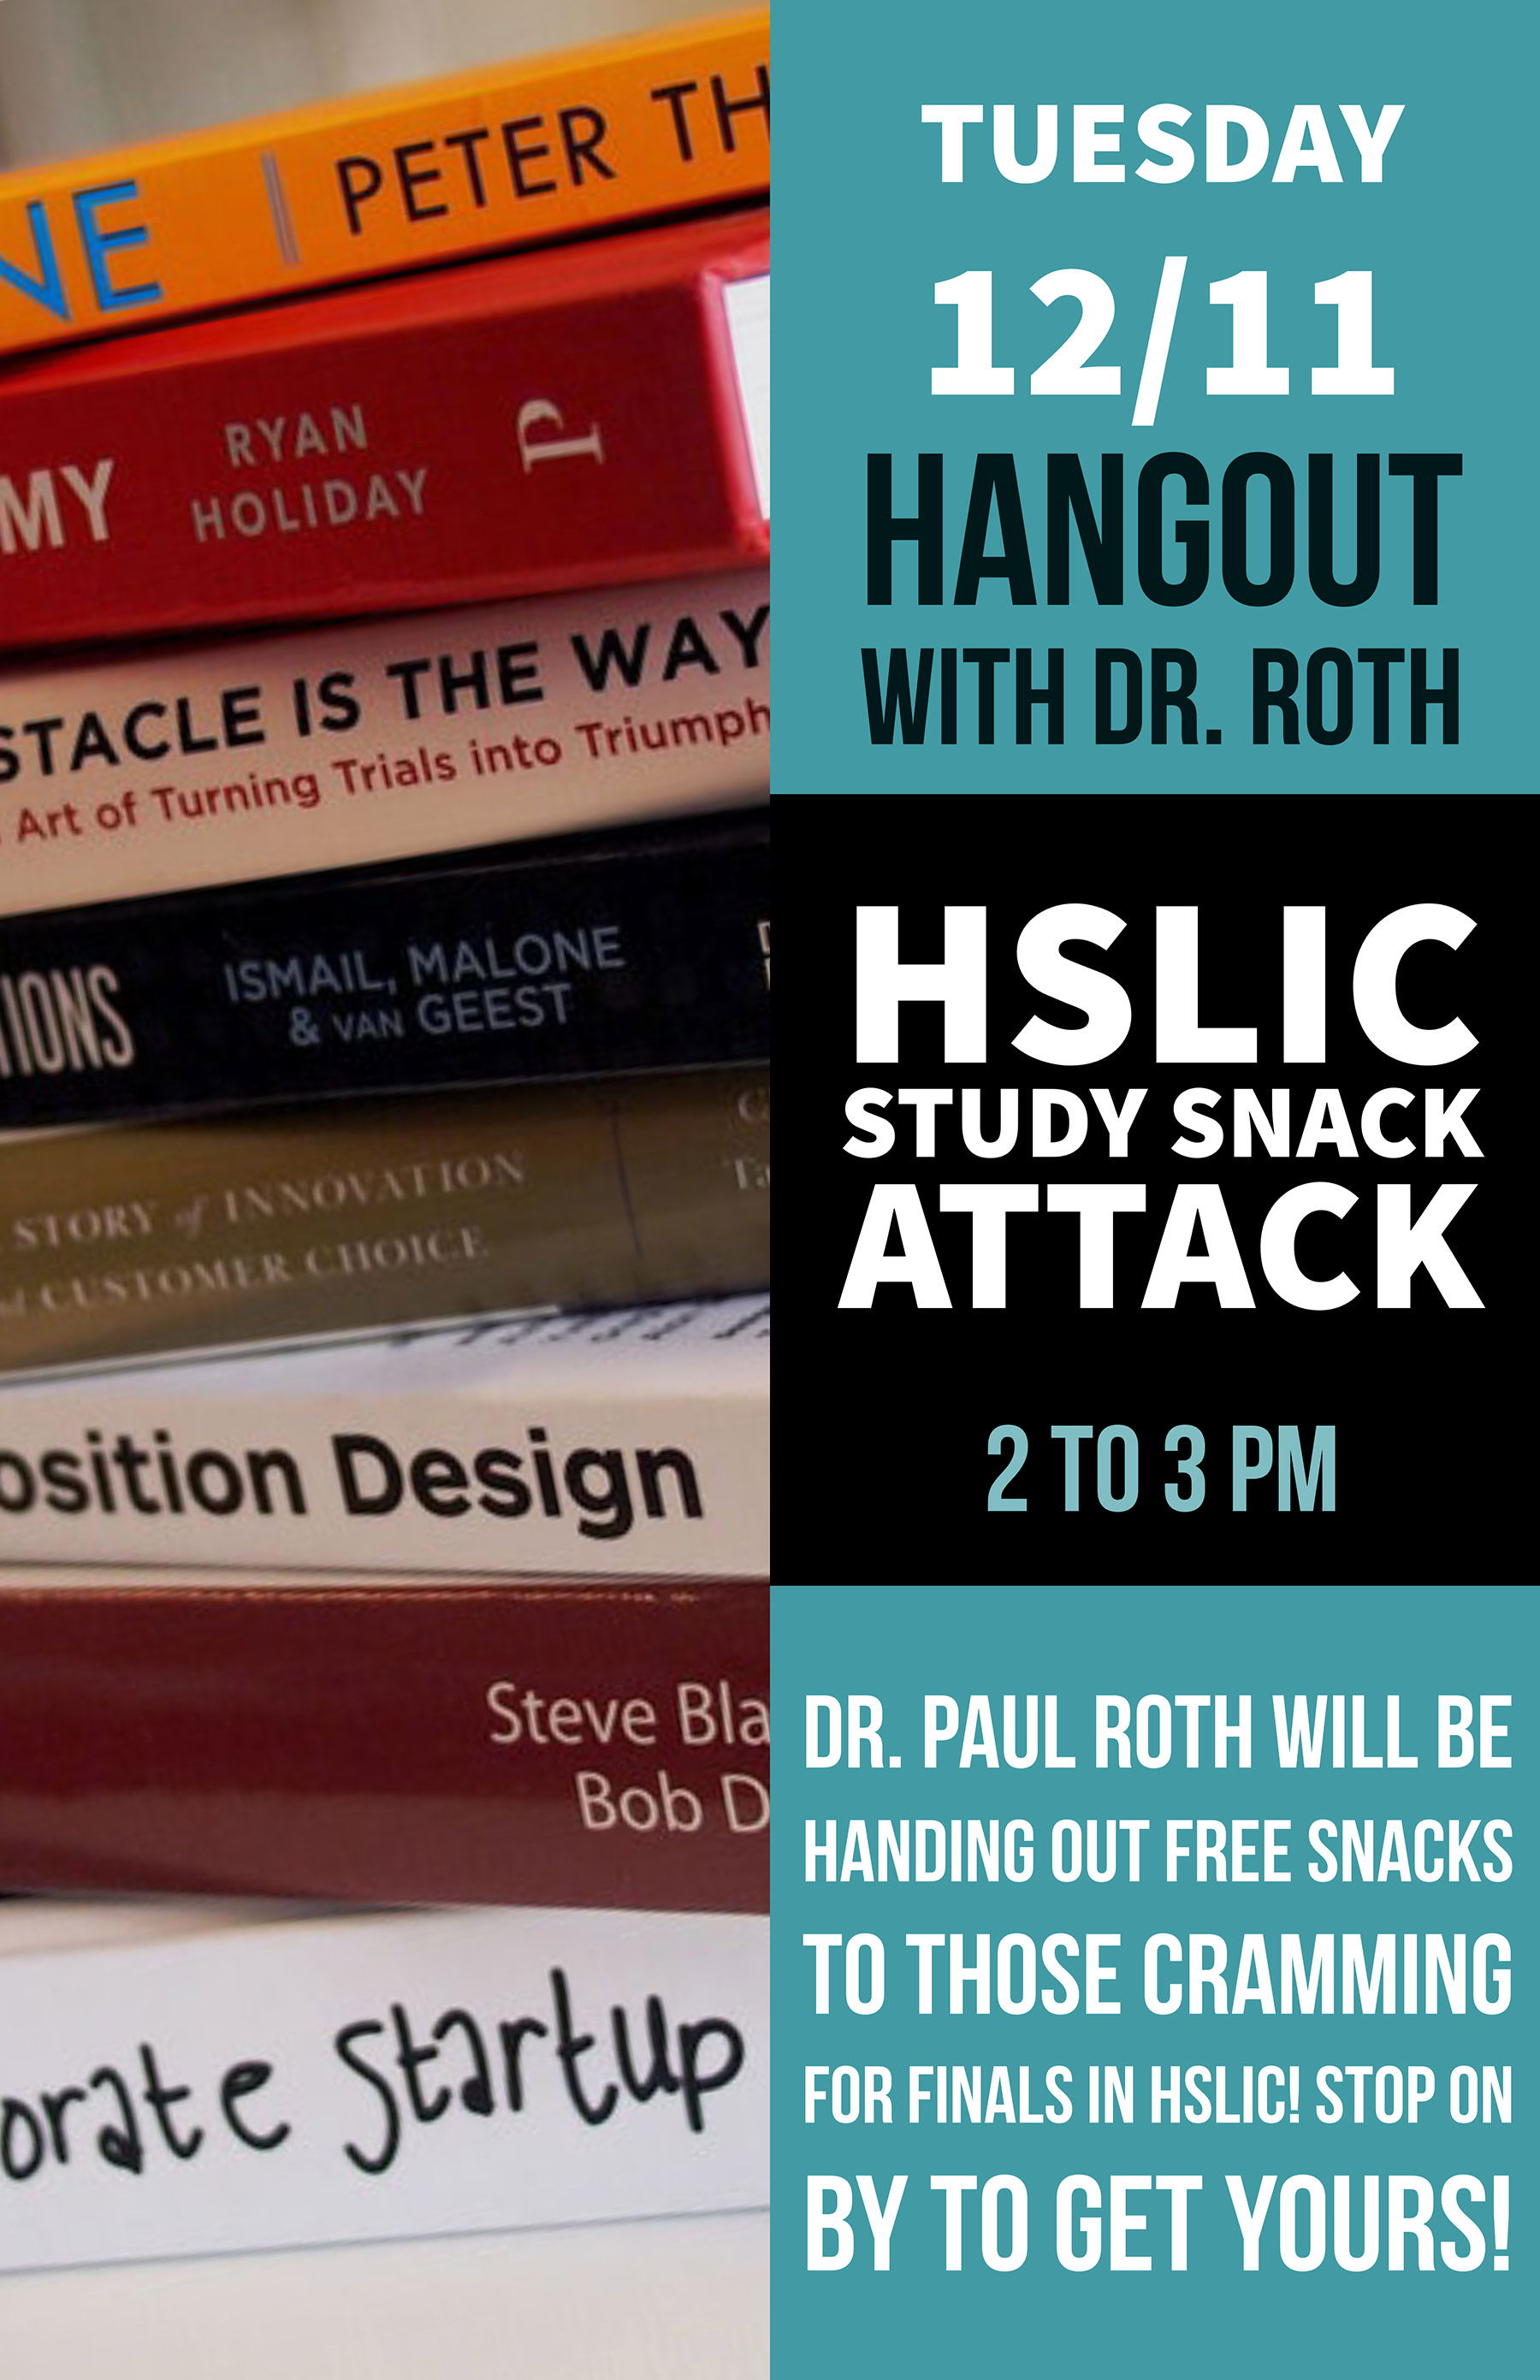 UNM HSC Chancellor, Dr. Roth, host a study snack attack in the library on Tuesday, December 11th from 2:00 - 3:00 p.m.